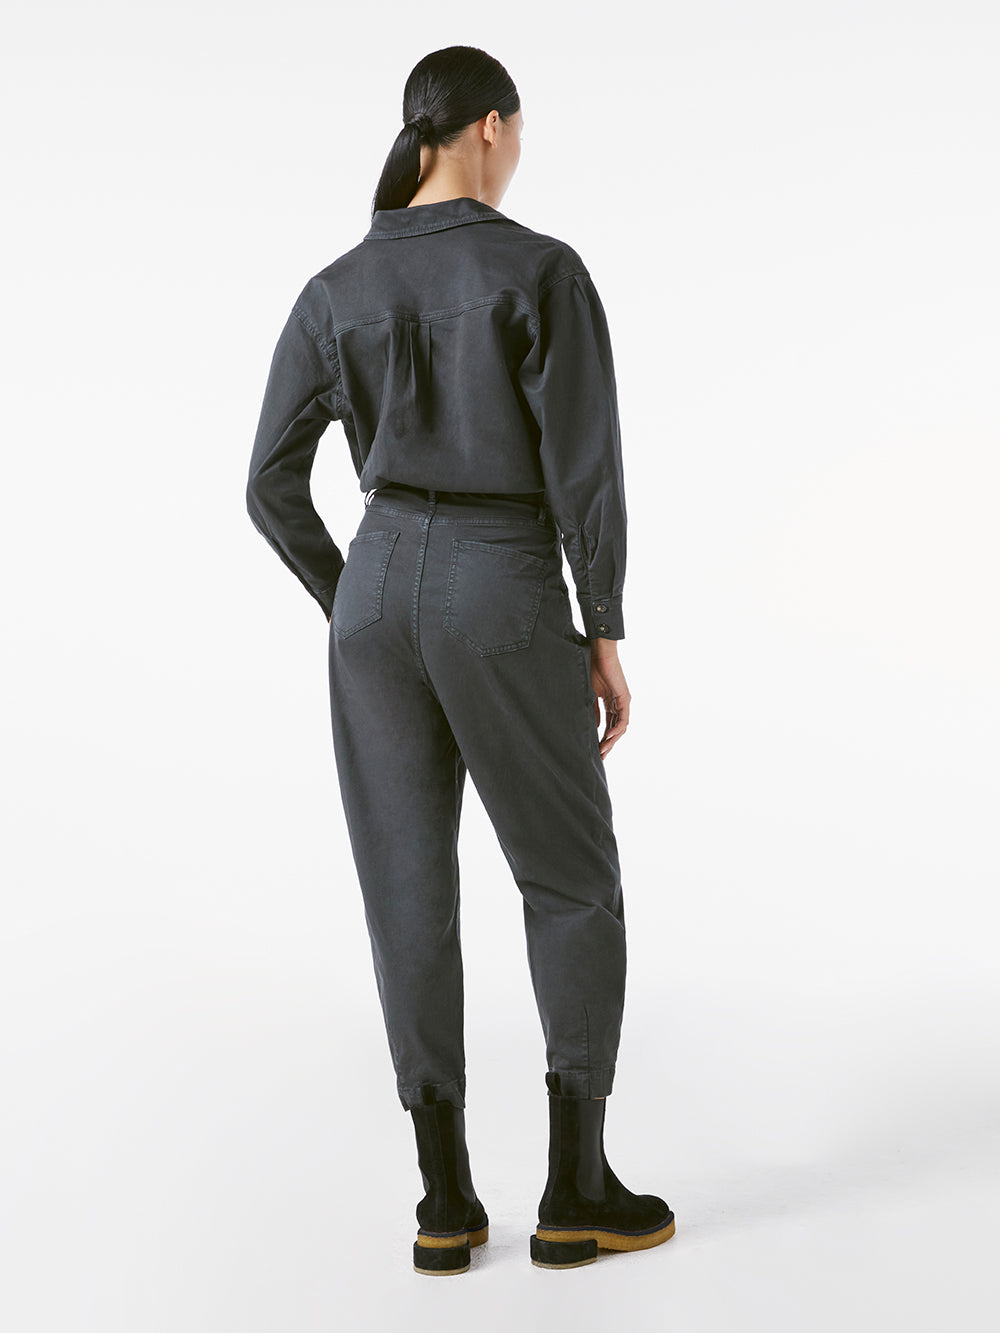 jumpsuit back view